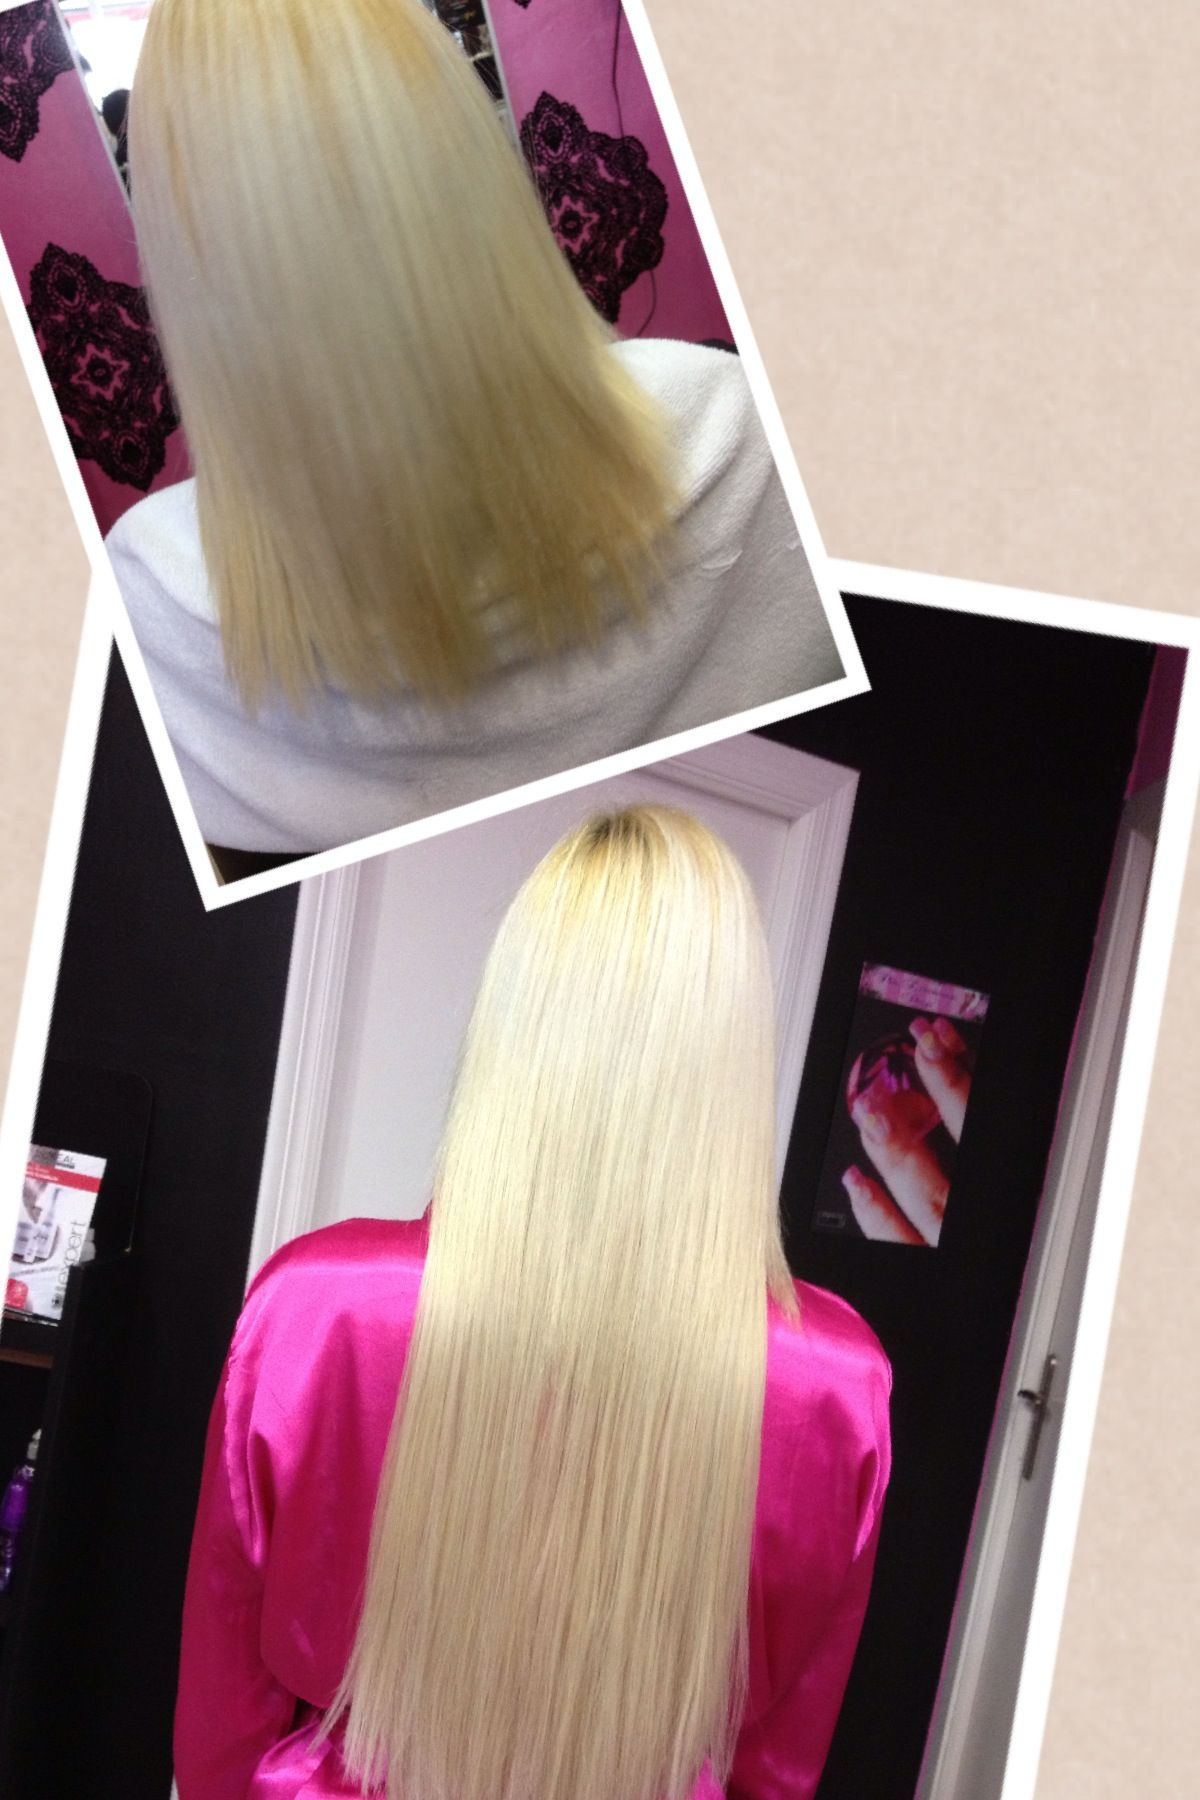 Greatlengths transfer extensions hair pinterest greatlengths transfer extensions healthy hairhair affairextensions nailshairstylemakeup pmusecretfo Image collections